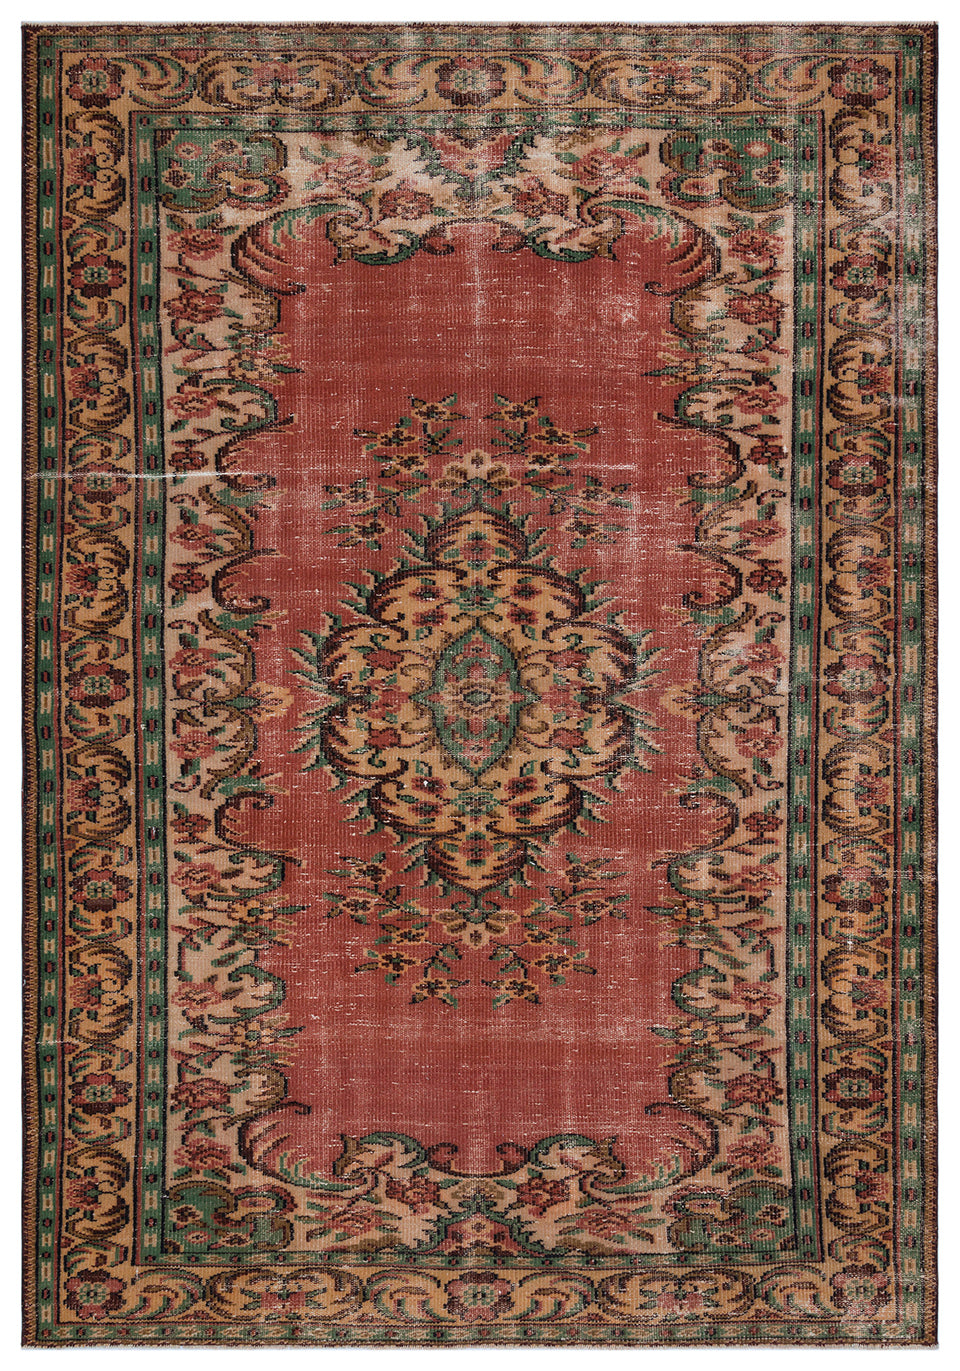 Vintage Turkish Rug, GA27951